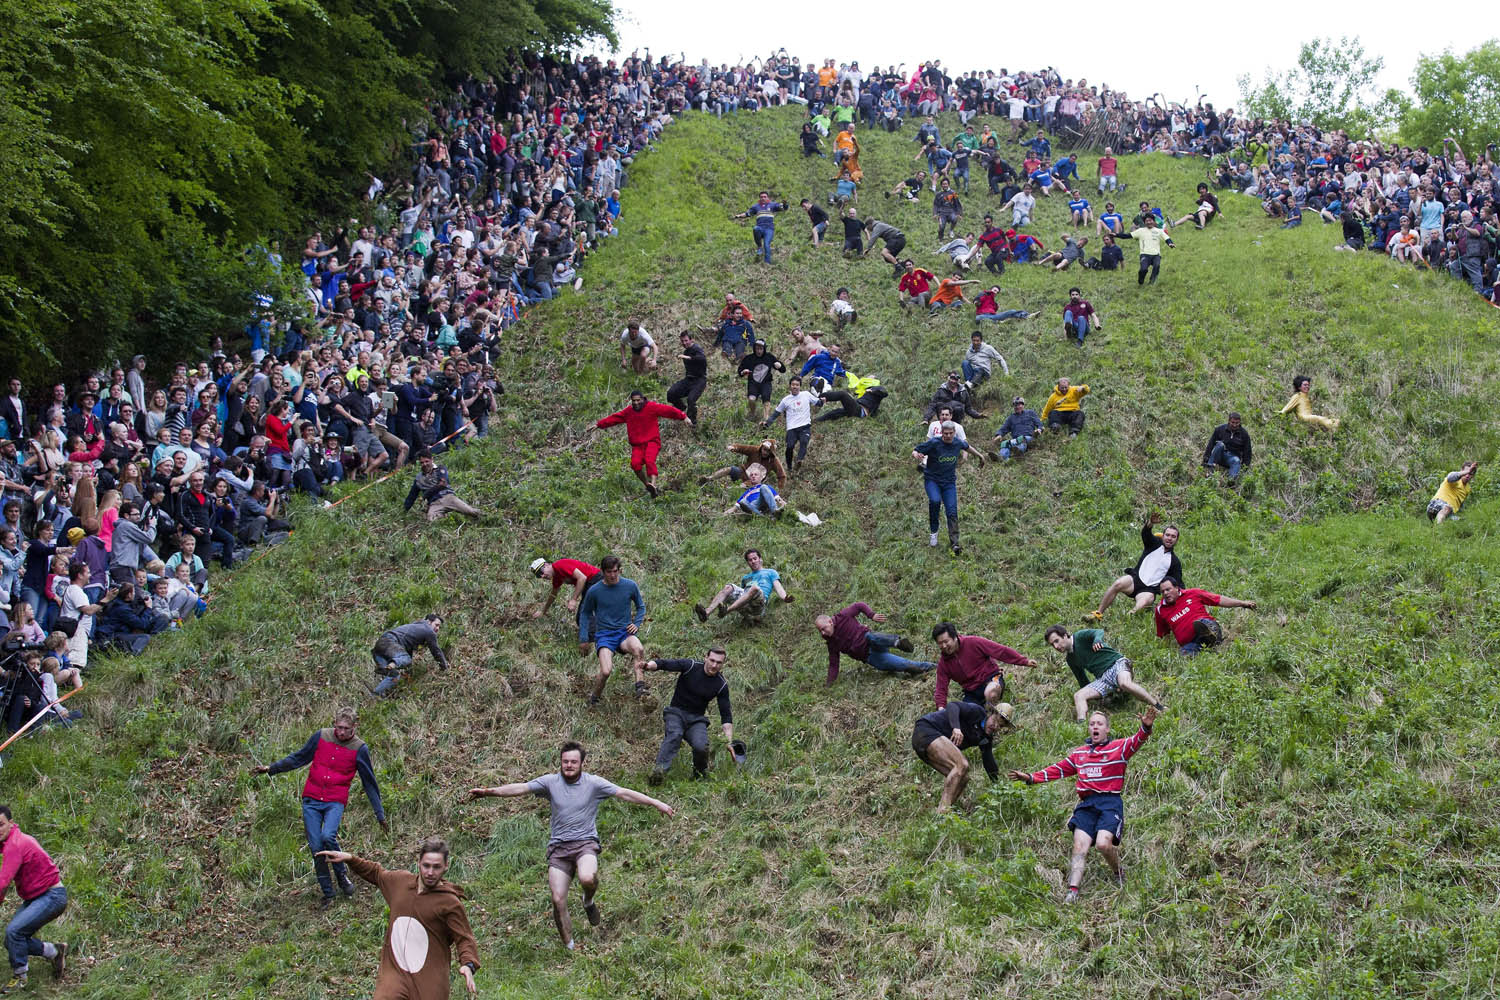 Competitors tumble down Coopers Hill in pursuit of a round Double Gloucester cheese during the annual cheese rolling and wake near the village of Brockworth near Gloucester in western England on May 26, 2014.